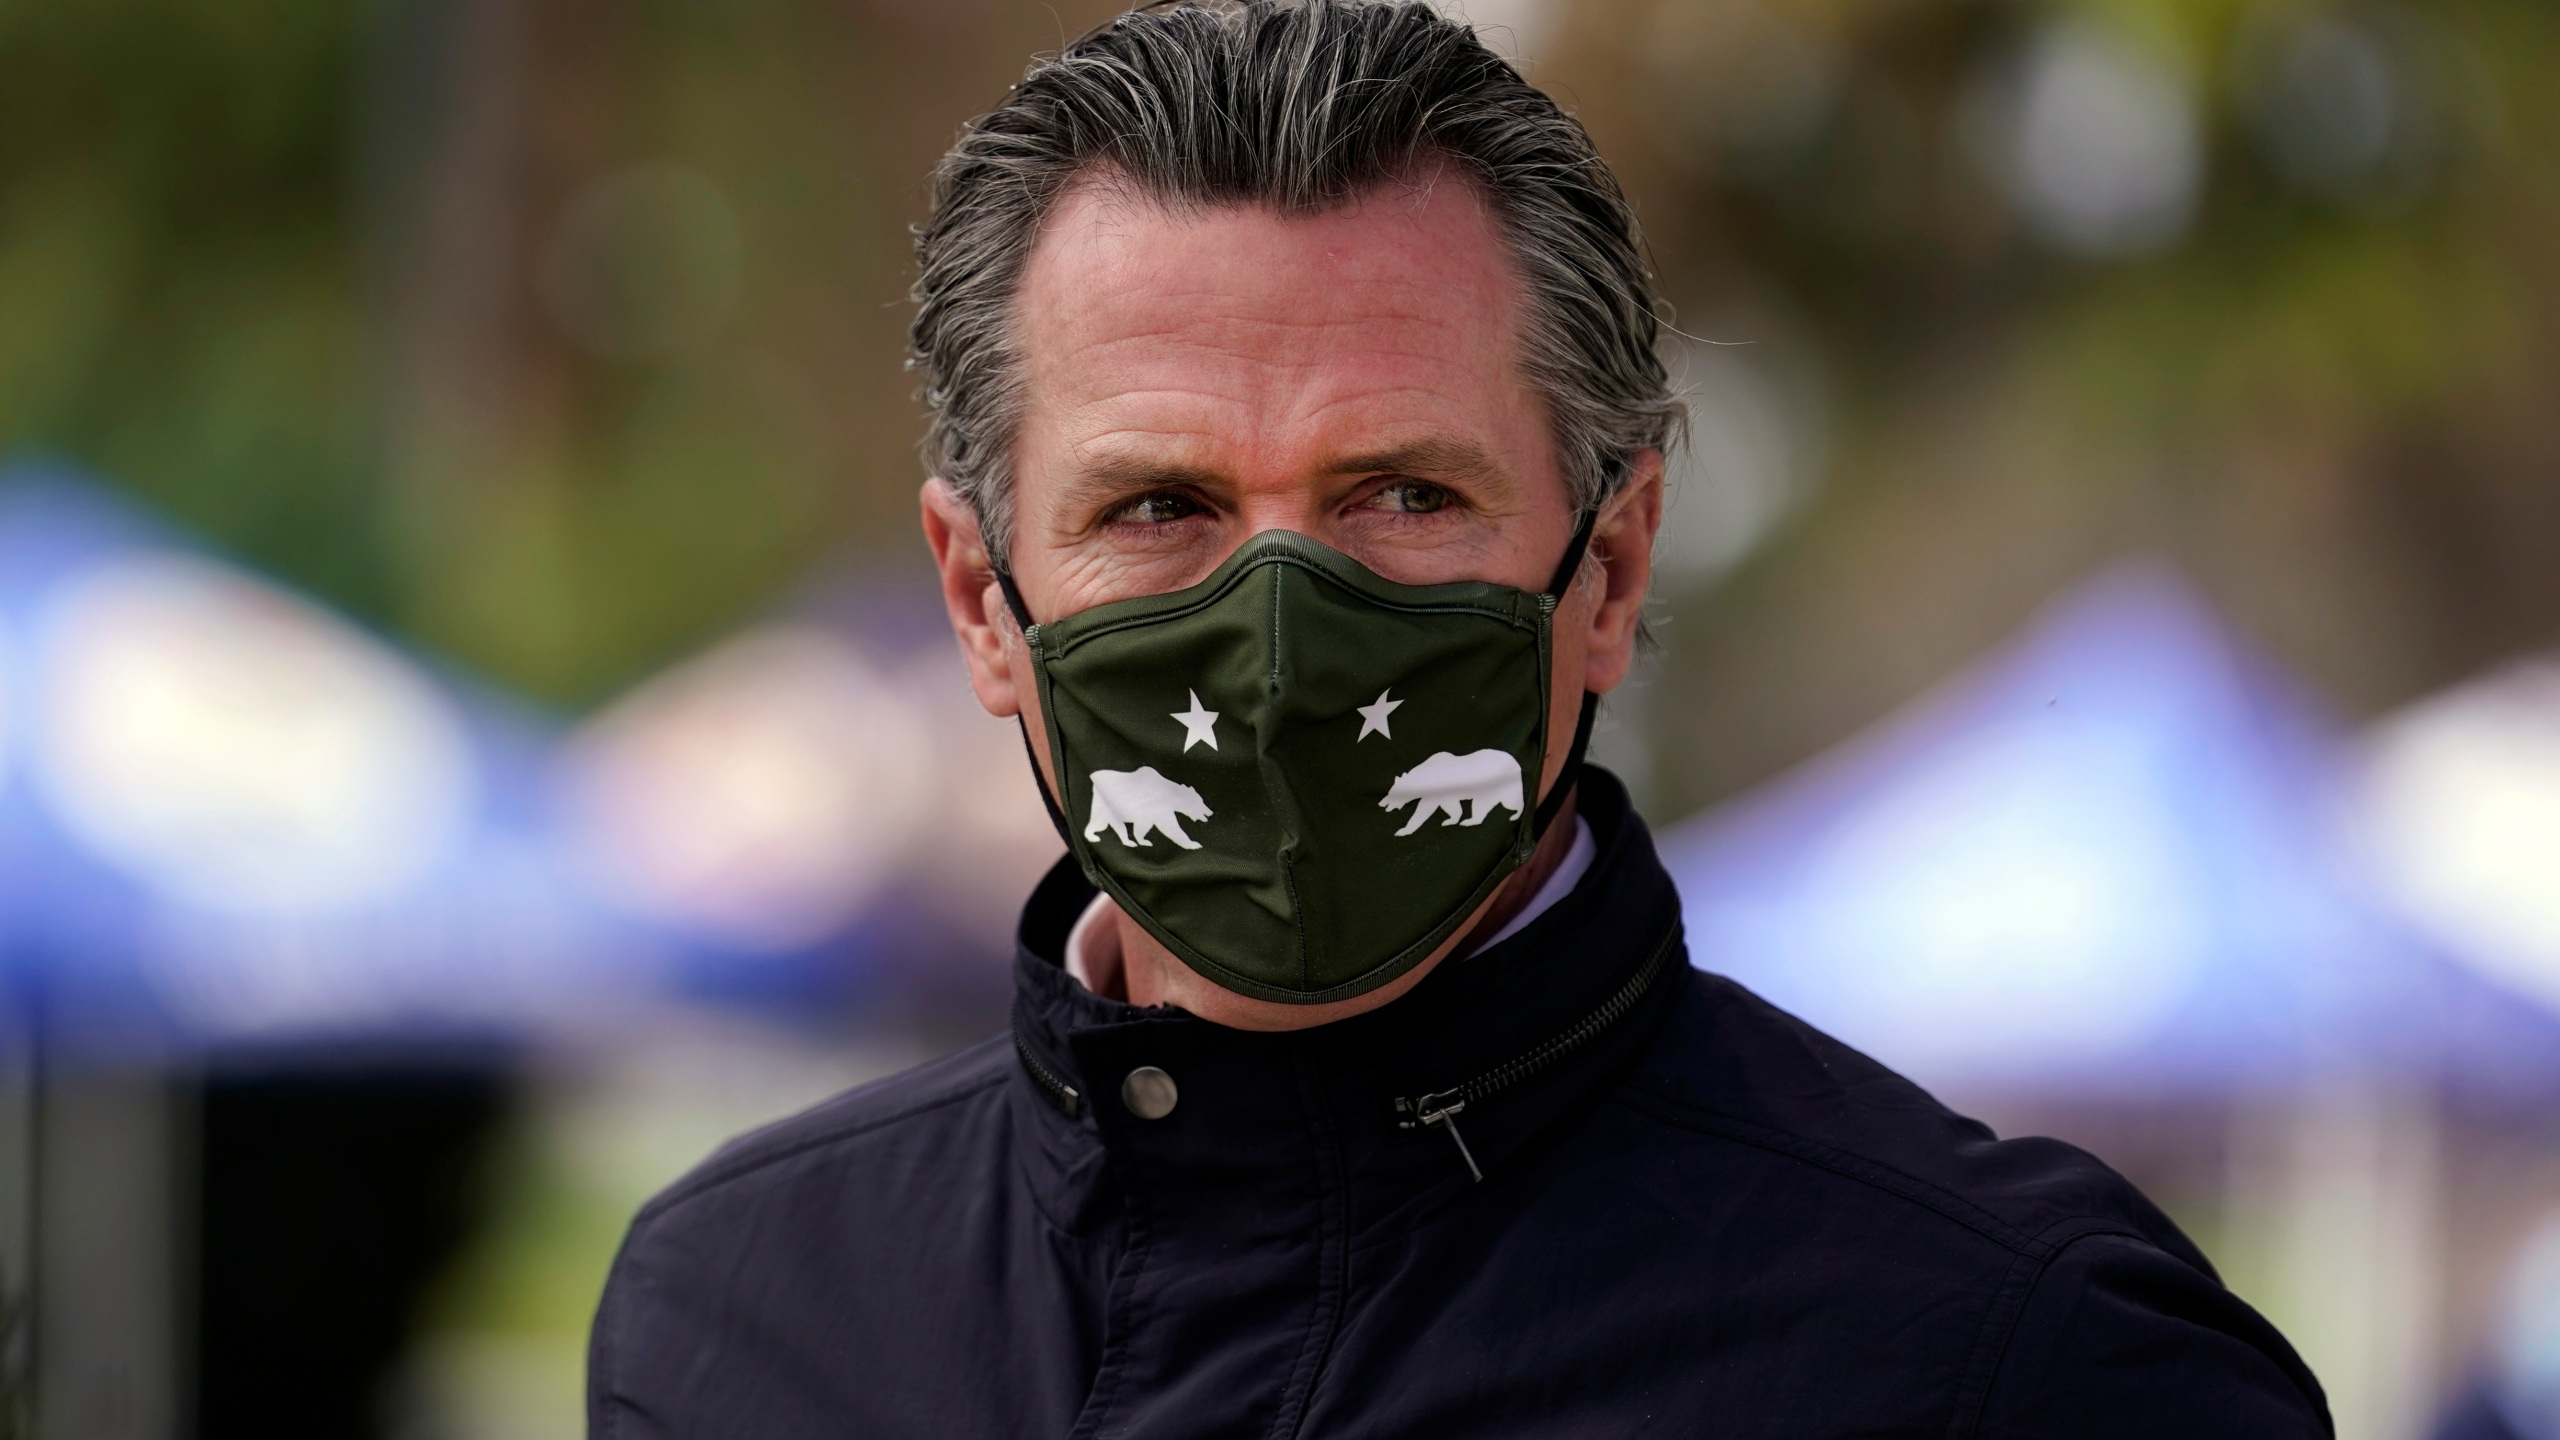 In this March 10, 2021, file photo, California Gov. Gavin Newsom wears a mask during a visit to a vaccination center in South Gate, Calif. (AP Photo/Marcio Jose Sanchez, File)